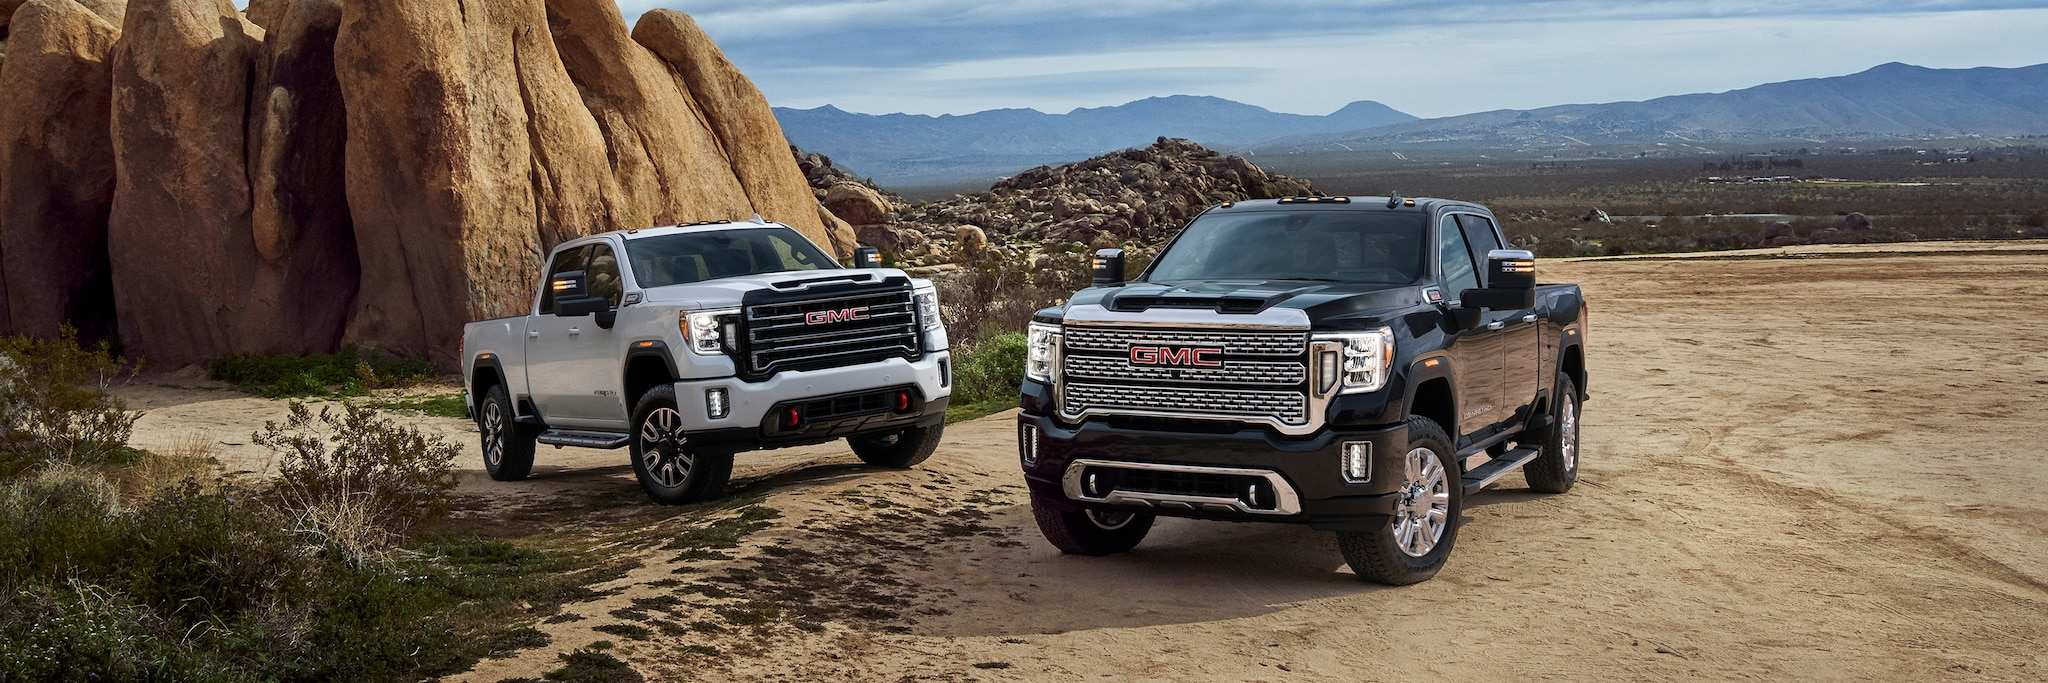 80 All New Gmc Pickup 2020 Engine for Gmc Pickup 2020